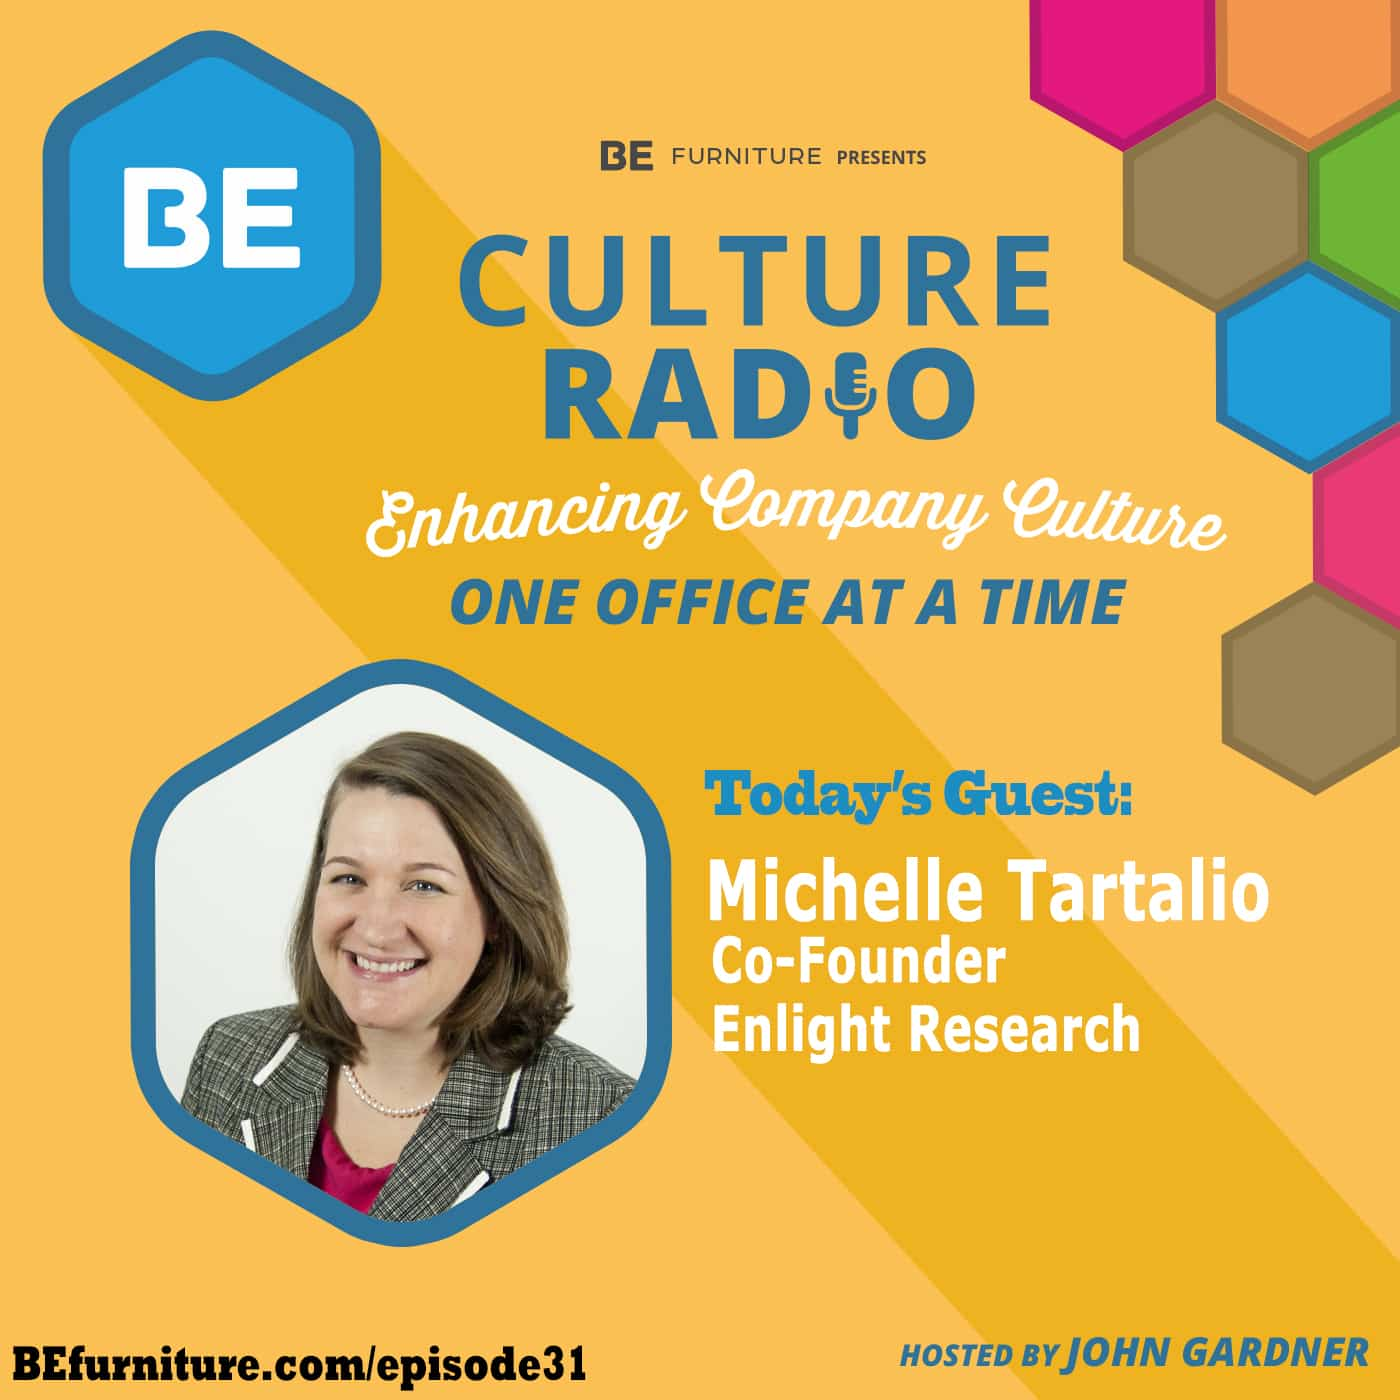 Michelle Tartalio - Research Director, Enlight Research